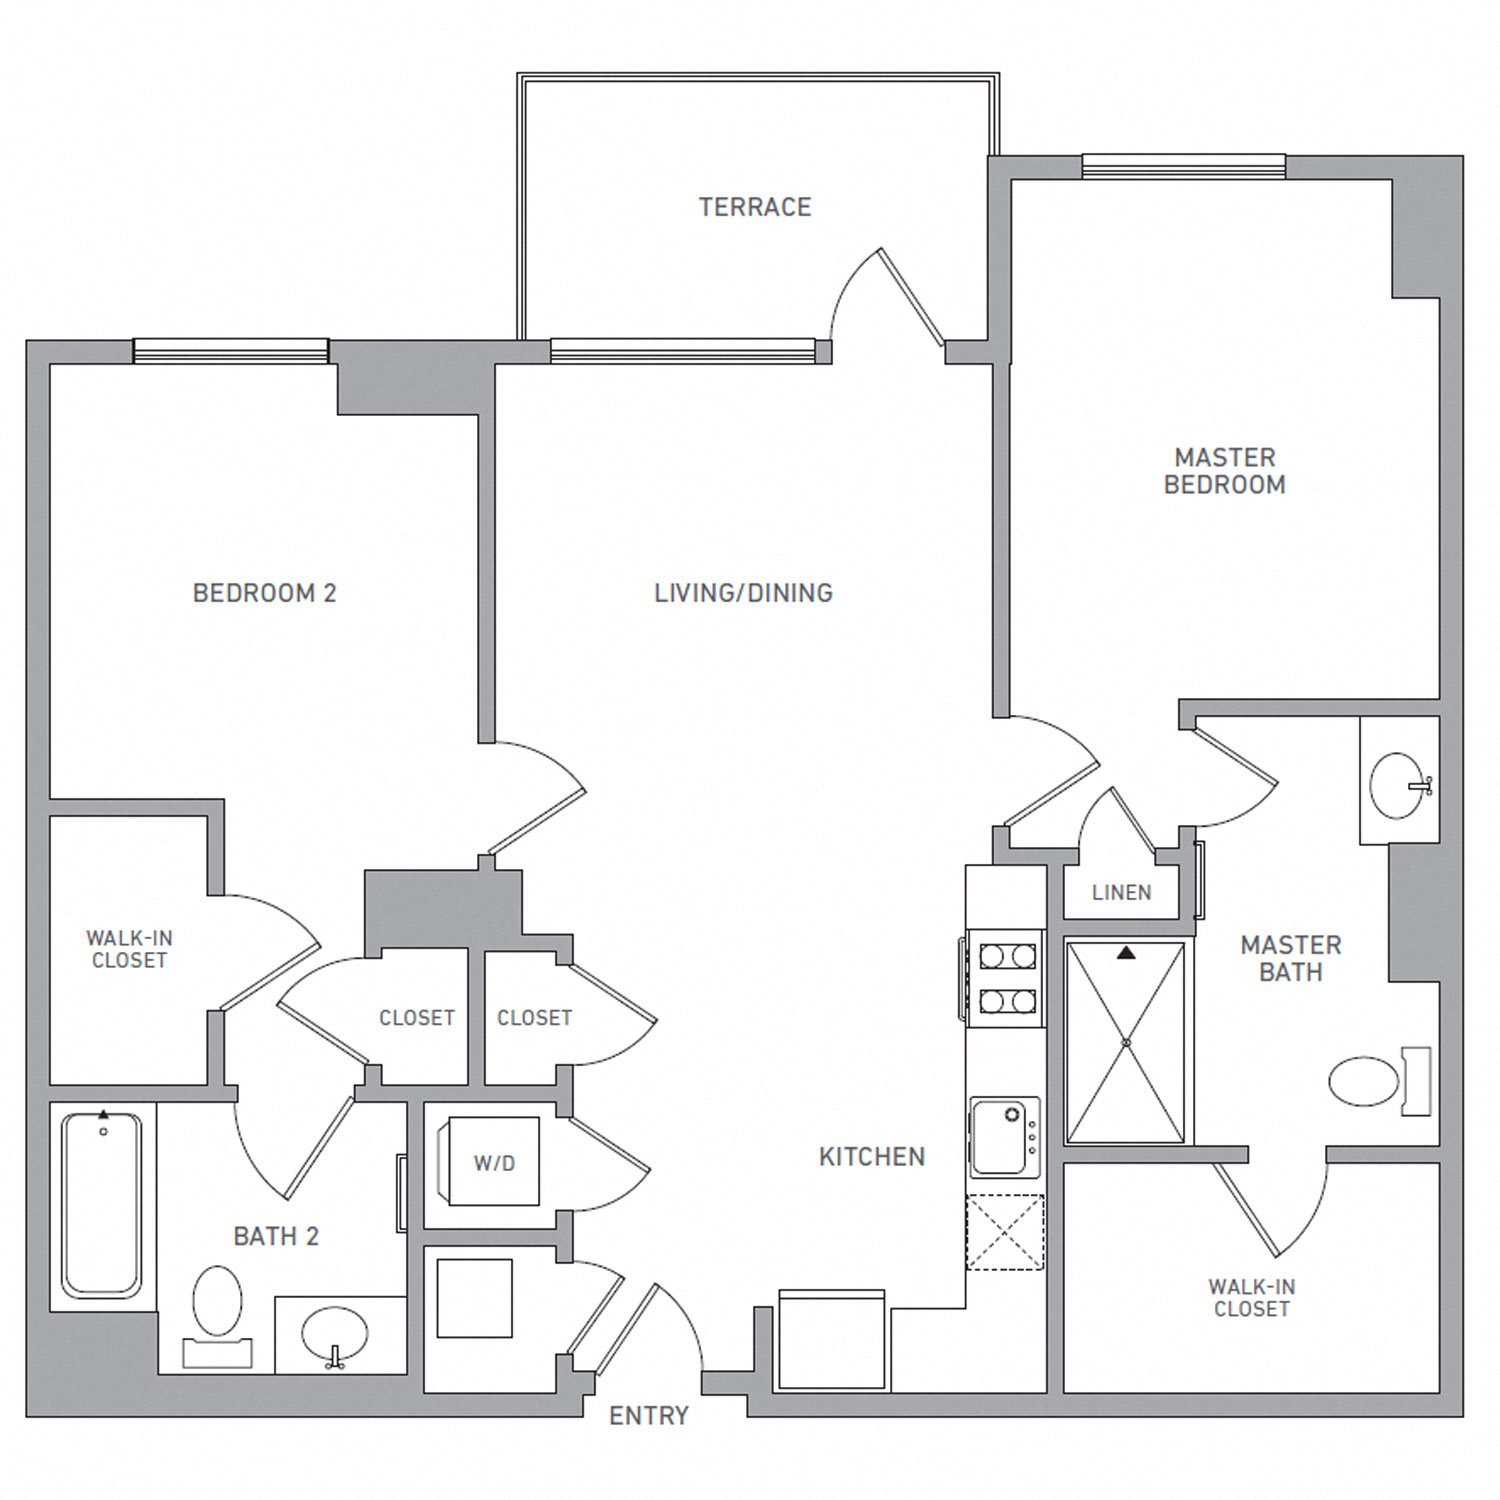 B Two floor plan diagram. Two bedrooms, two bathrooms, an open kitchen and living area, a terrace, and a washer dryer.